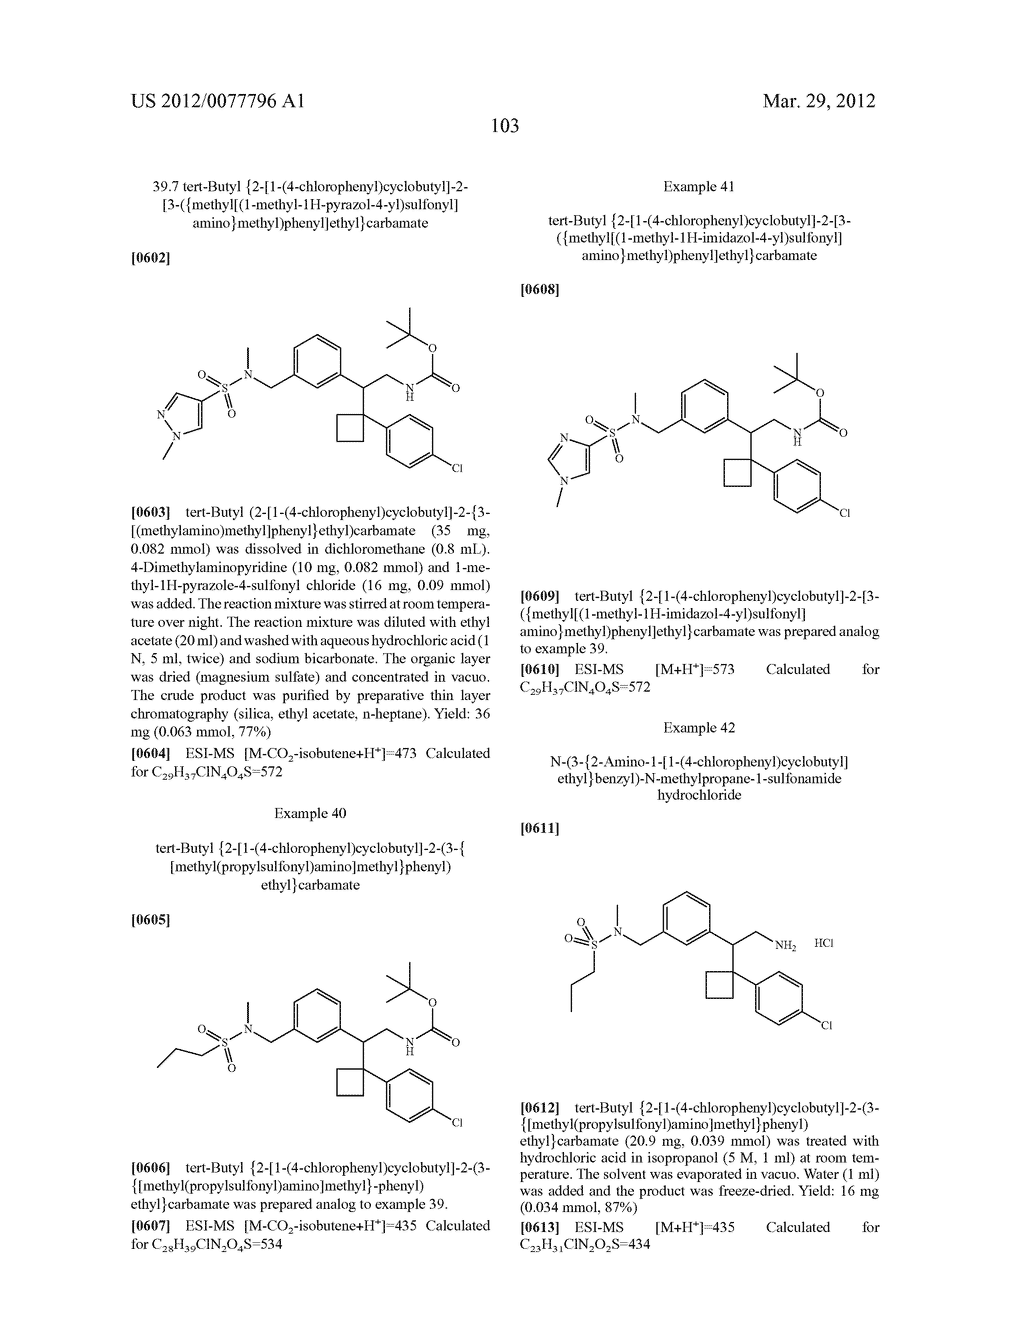 PHENALKYLAMINE DERIVATIVES, PHARMACEUTICAL COMPOSITIONS CONTAINING THEM,     AND THEIR USE IN THERAPY - diagram, schematic, and image 104